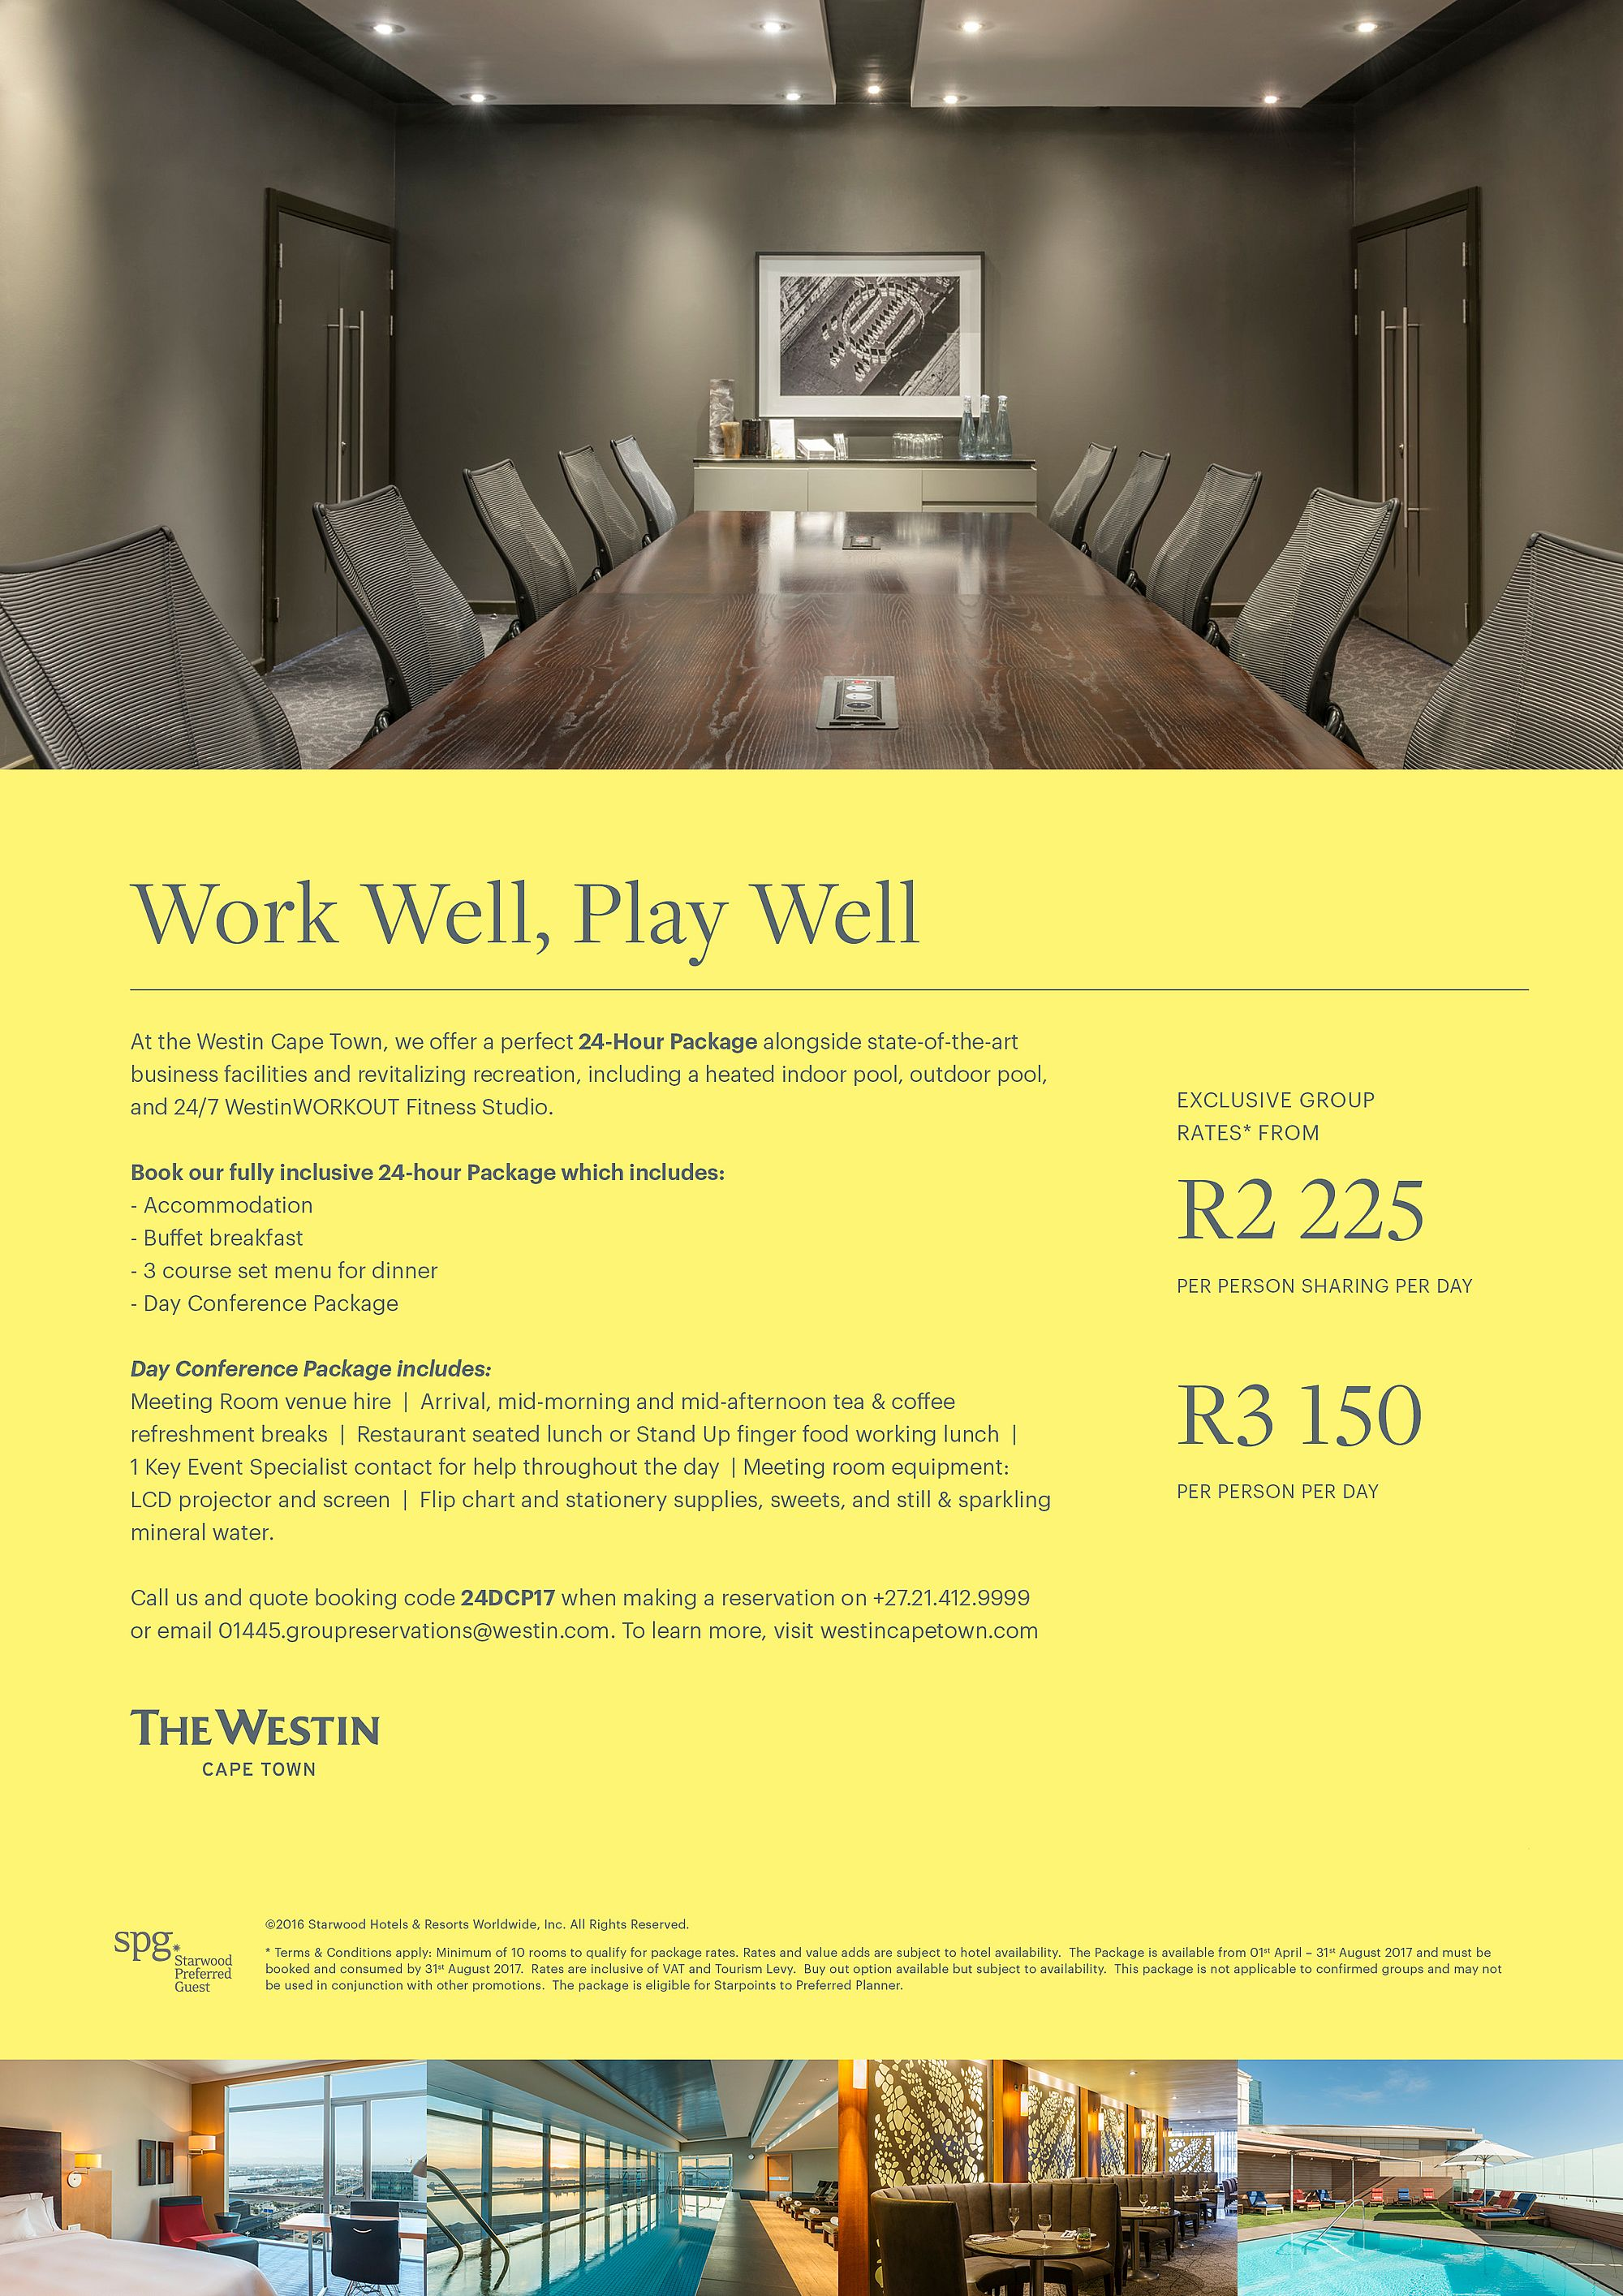 Flyer advertising 24-Hour Meetings and Events at The Westin Cape Town